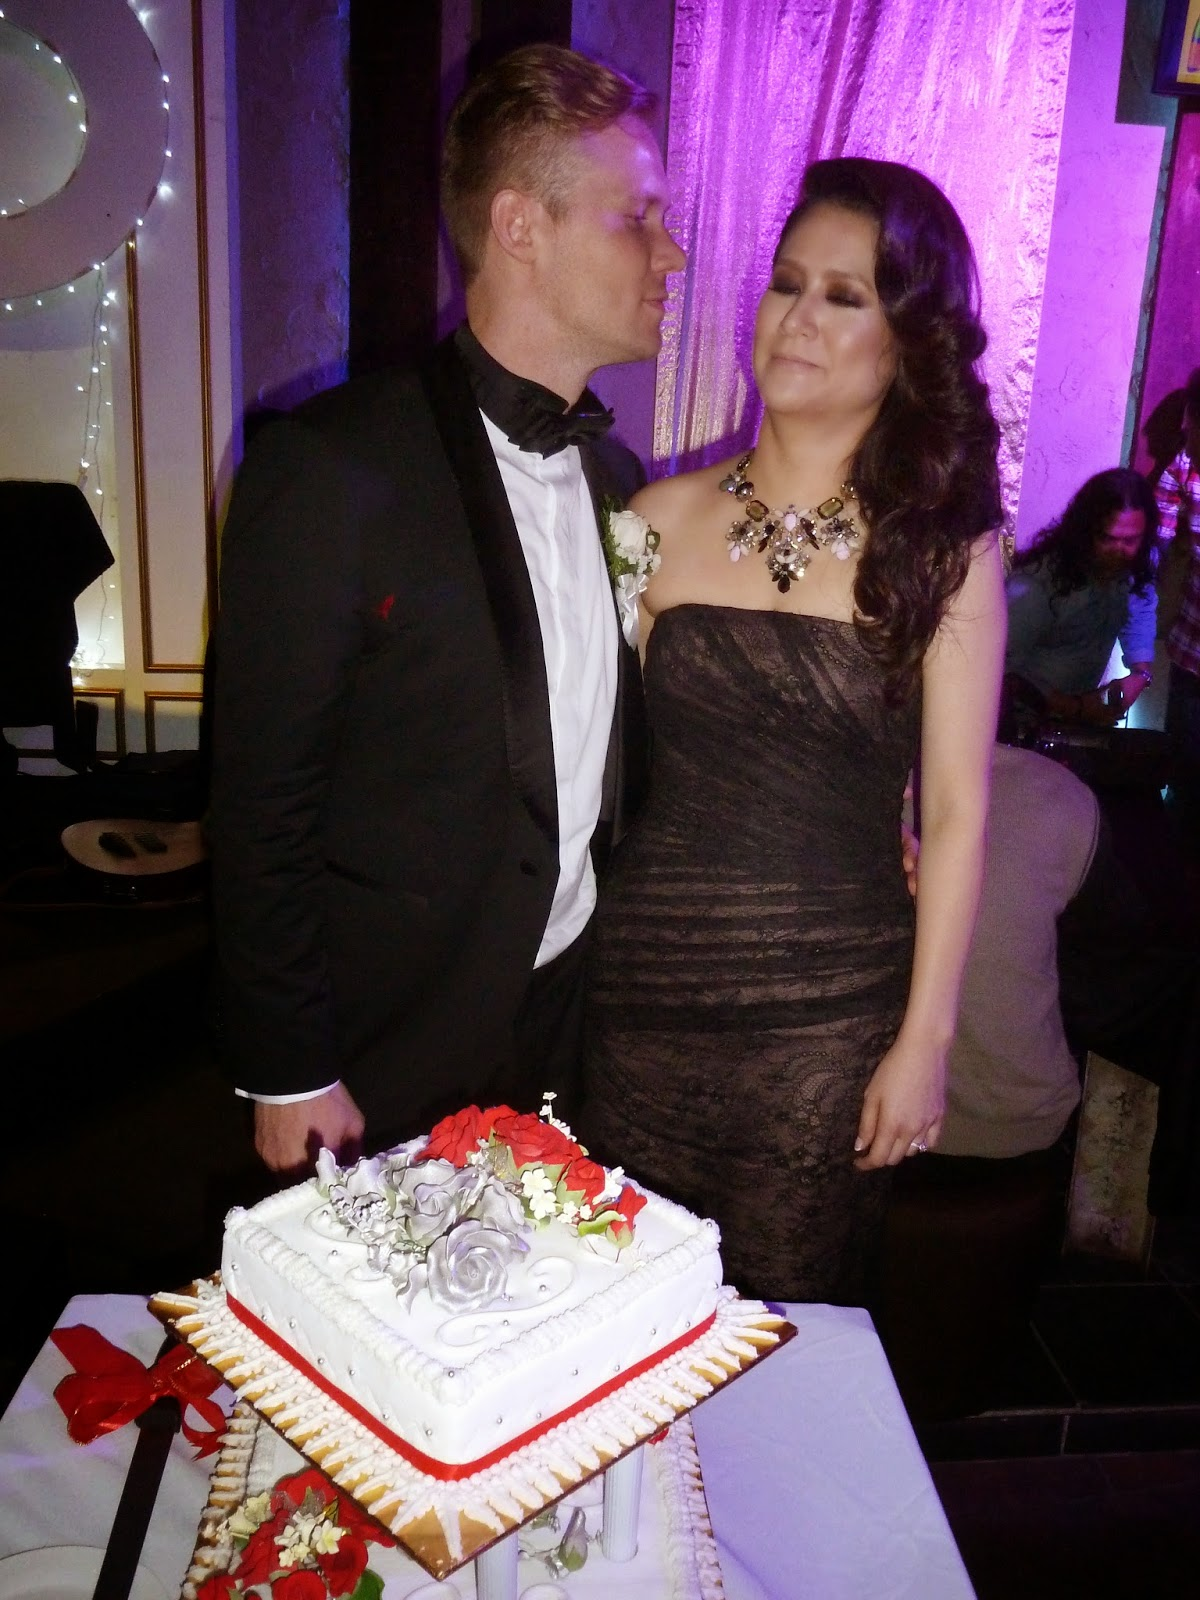 Kee Hua Chee Live Part 1 Stacey Lee Marries Michael